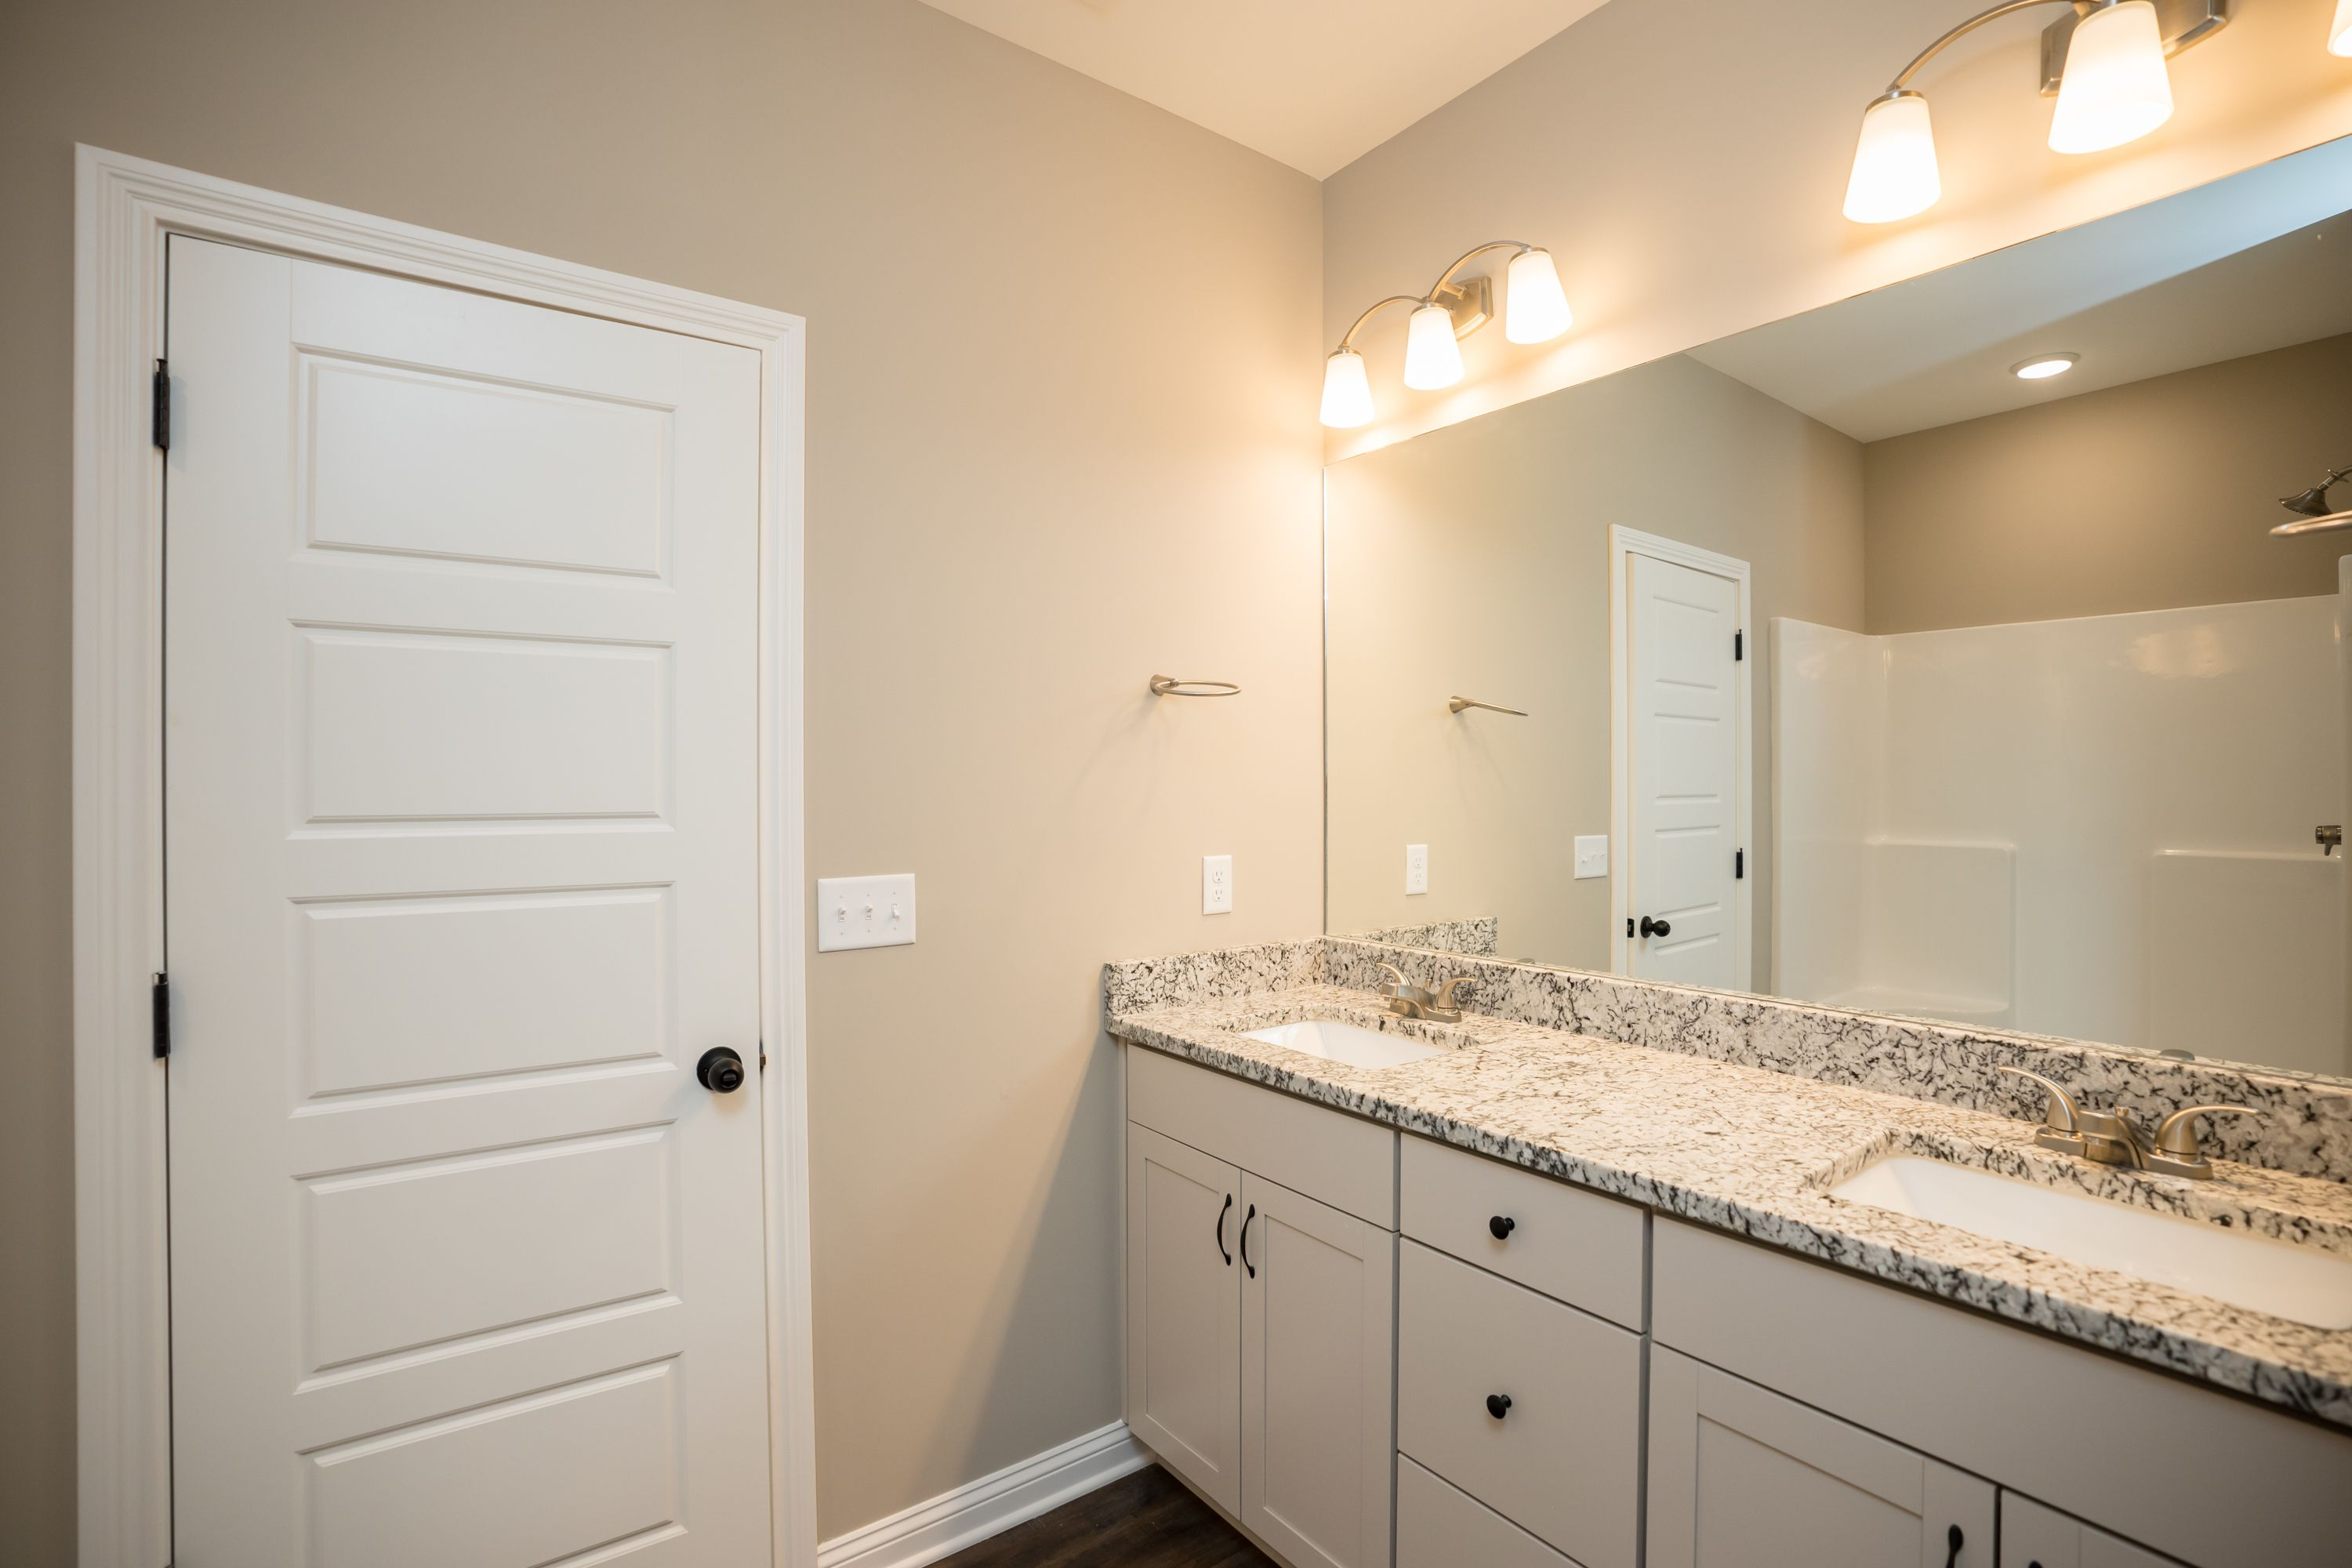 Bathroom featured in The Martha By James Monroe Homes in Lexington, KY